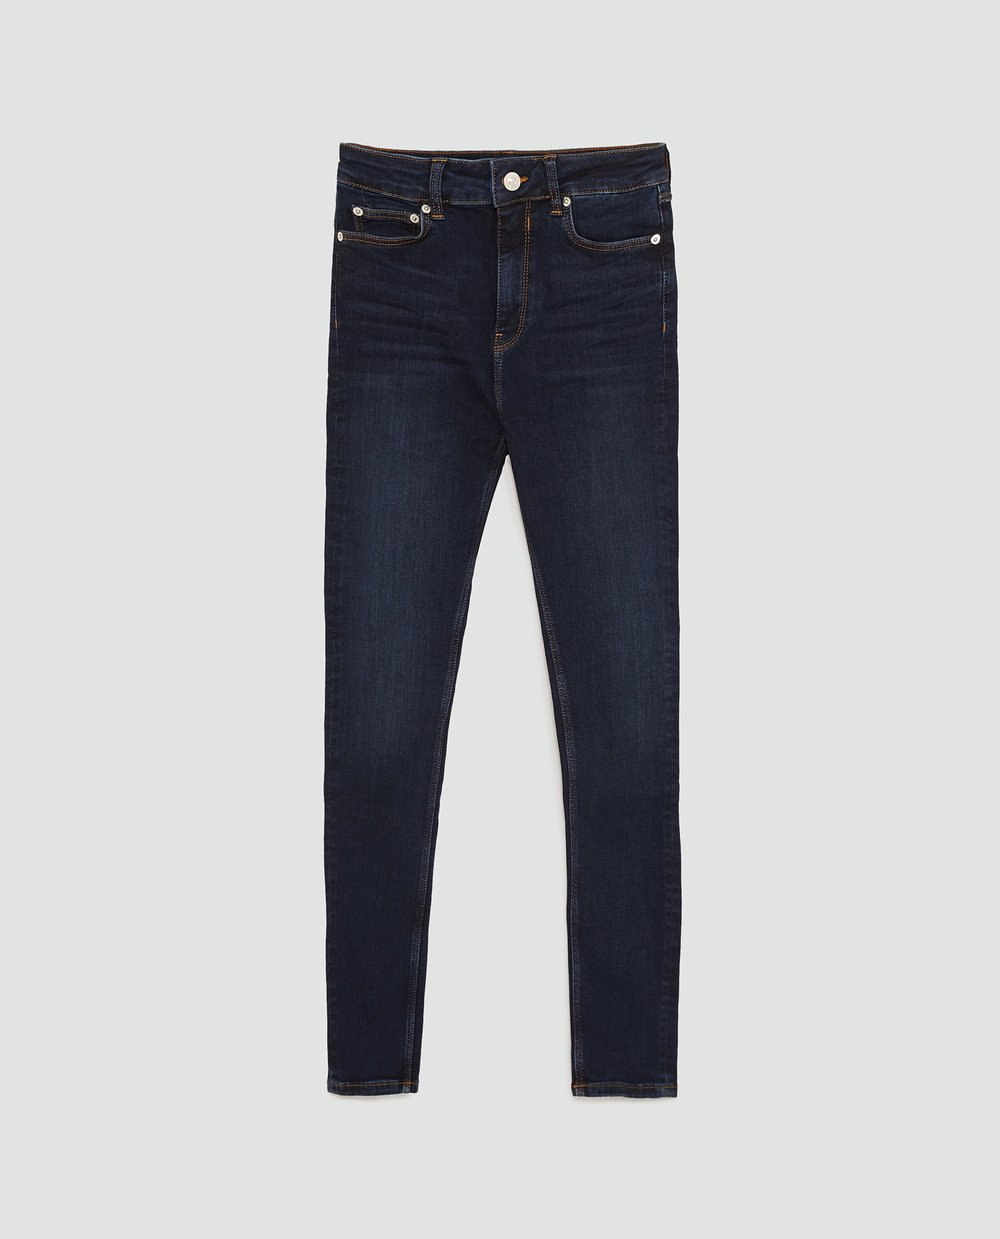 Zara jeans   have been my go-to lately for denim. I like the $49 price tag, and the Sophisticated line in particular features really soft fabrics. High-waisted, stretchy and skinny? Yes, please.